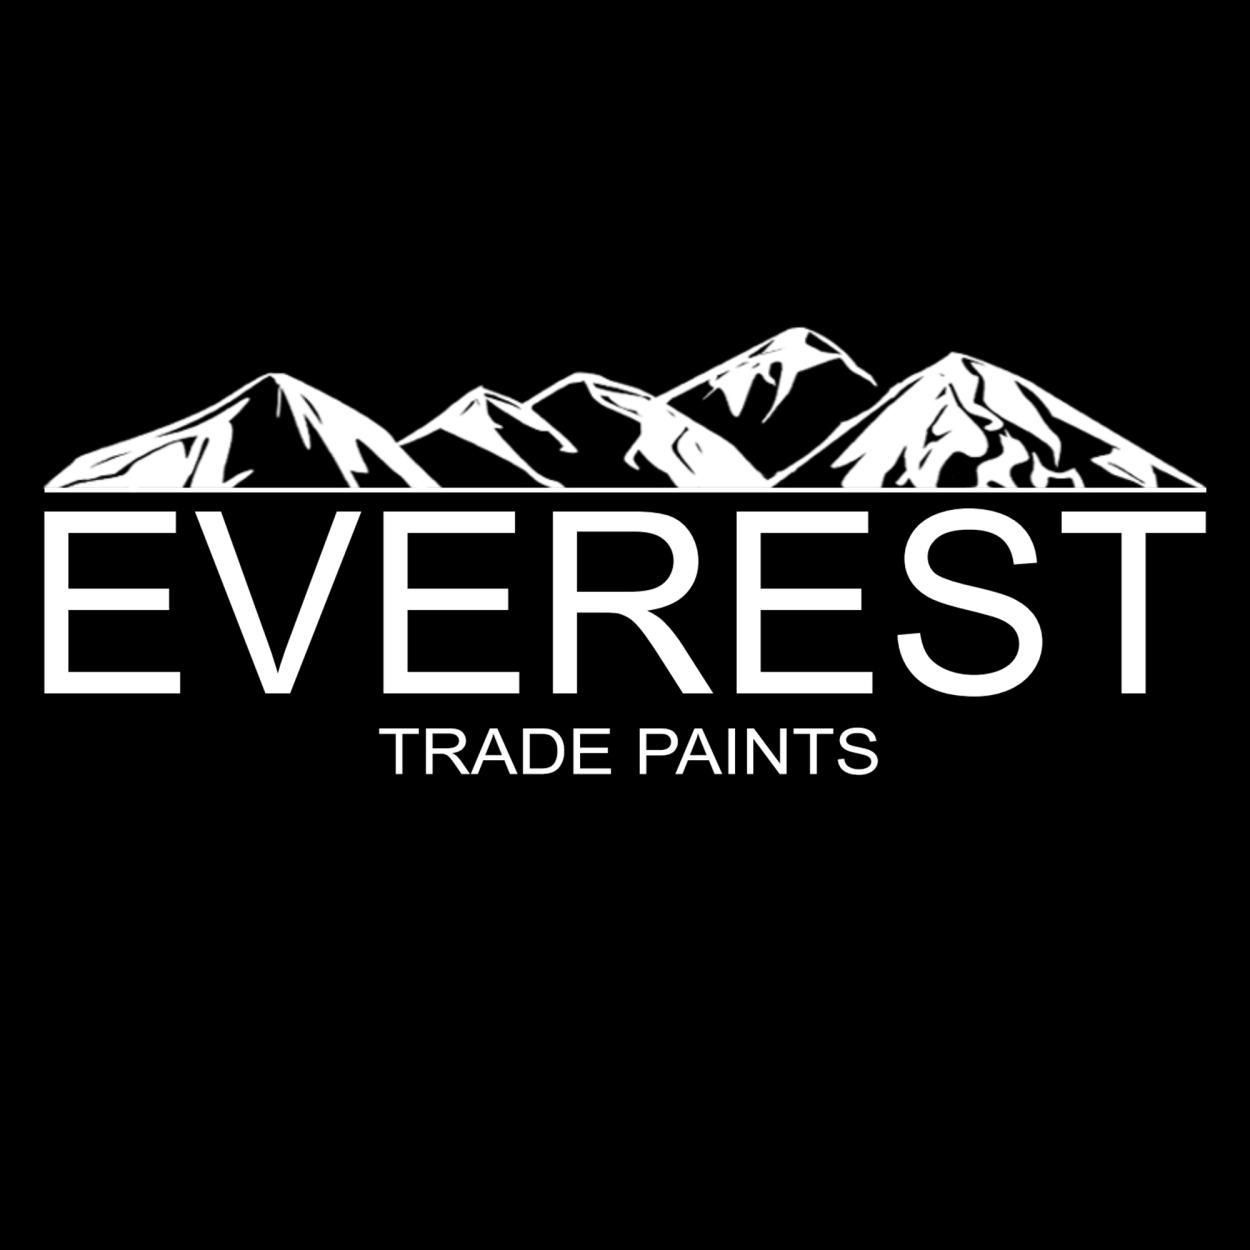 Everest Trade Paints Logo